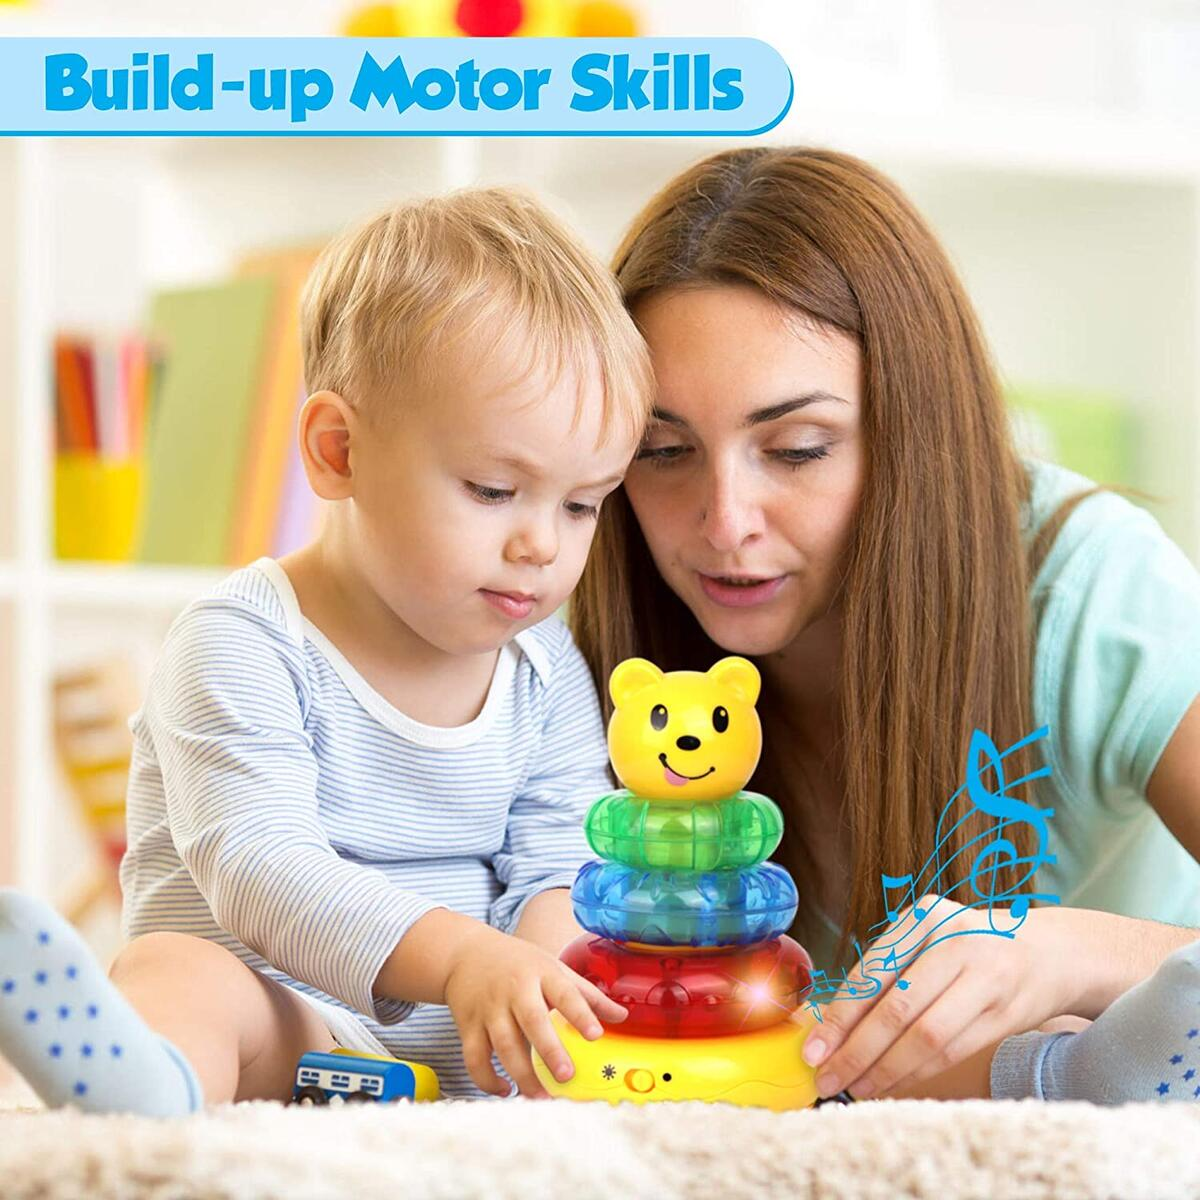 Playkidz Musical Bear Stacker, Stacking Toy with Lights and Sounds for Toddlers - Sensory and Educational Toy for Girls and Boys Ages 3+, Great Birthday Gift